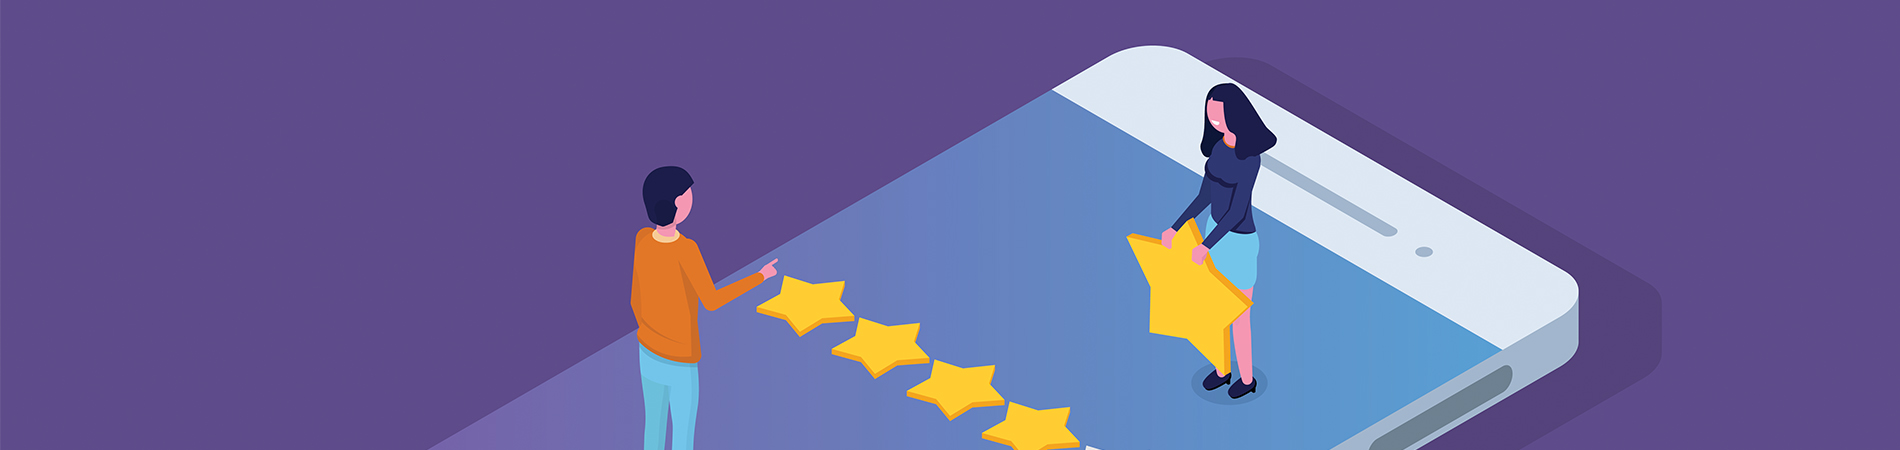 Illustration of individuals giving 5 stars to improve online reputation for a business